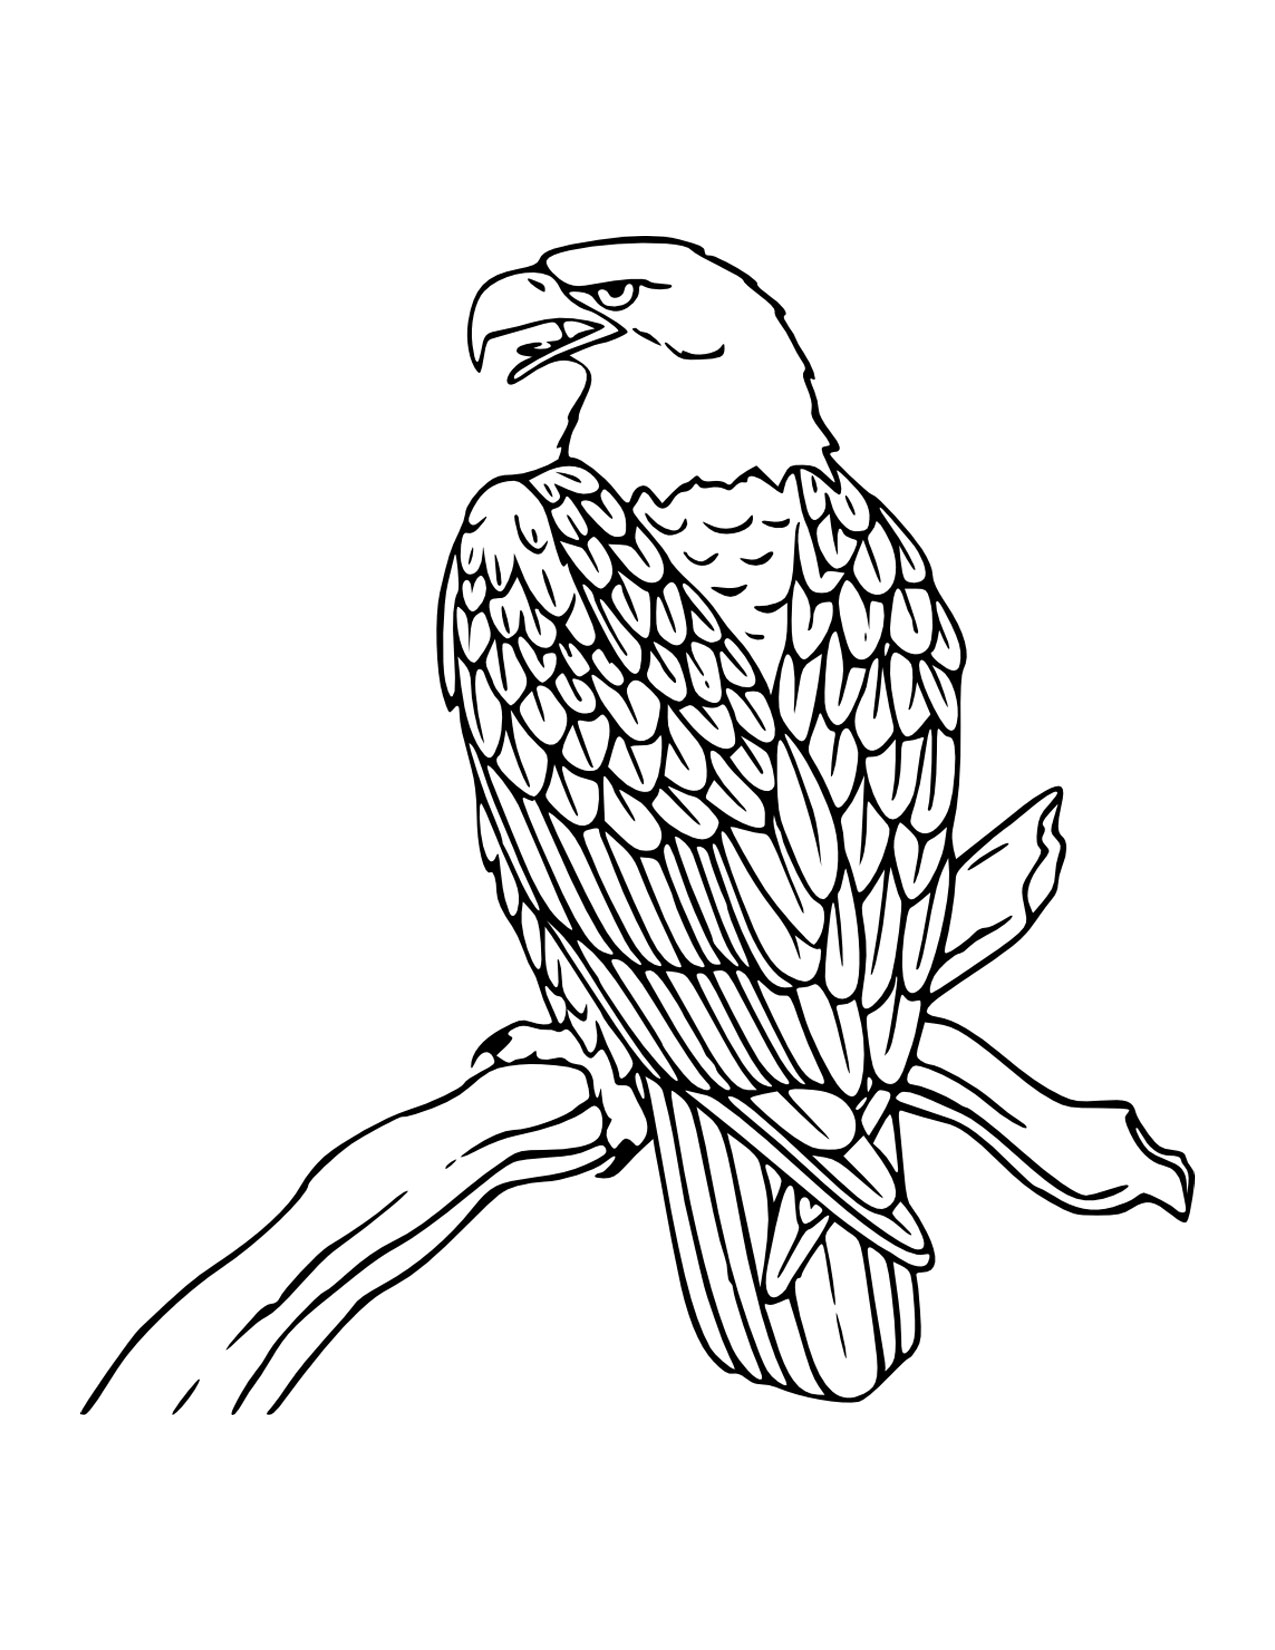 eagle colouring eagle coloring pages to download and print for free eagle colouring